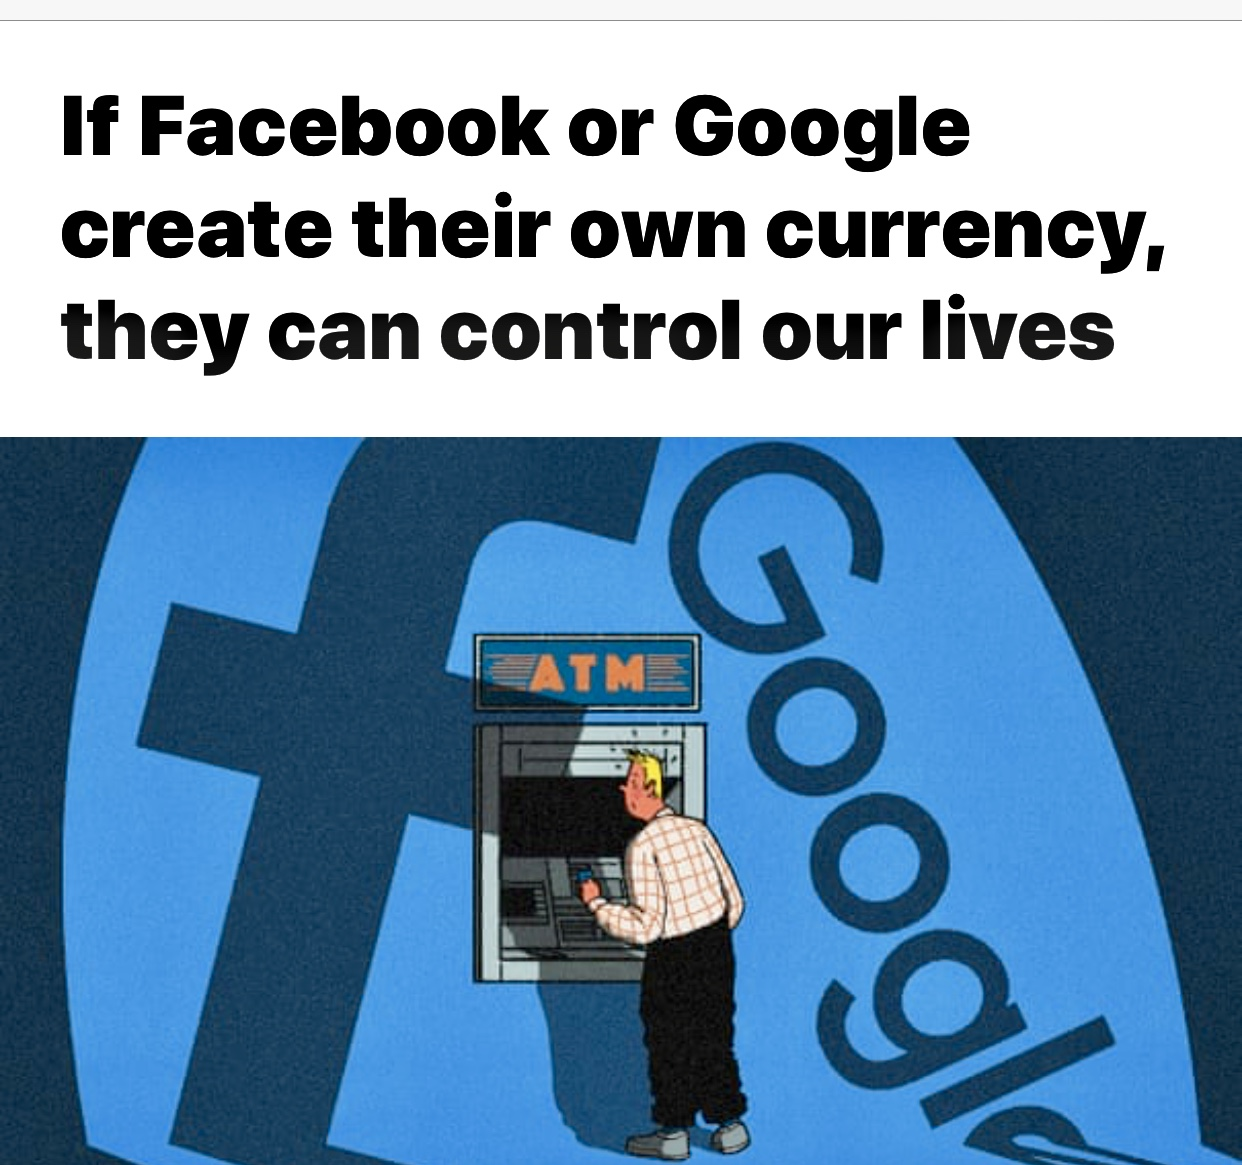 If Facebook or Google create their own currency, they can control our lives | Facebook | The Guardian